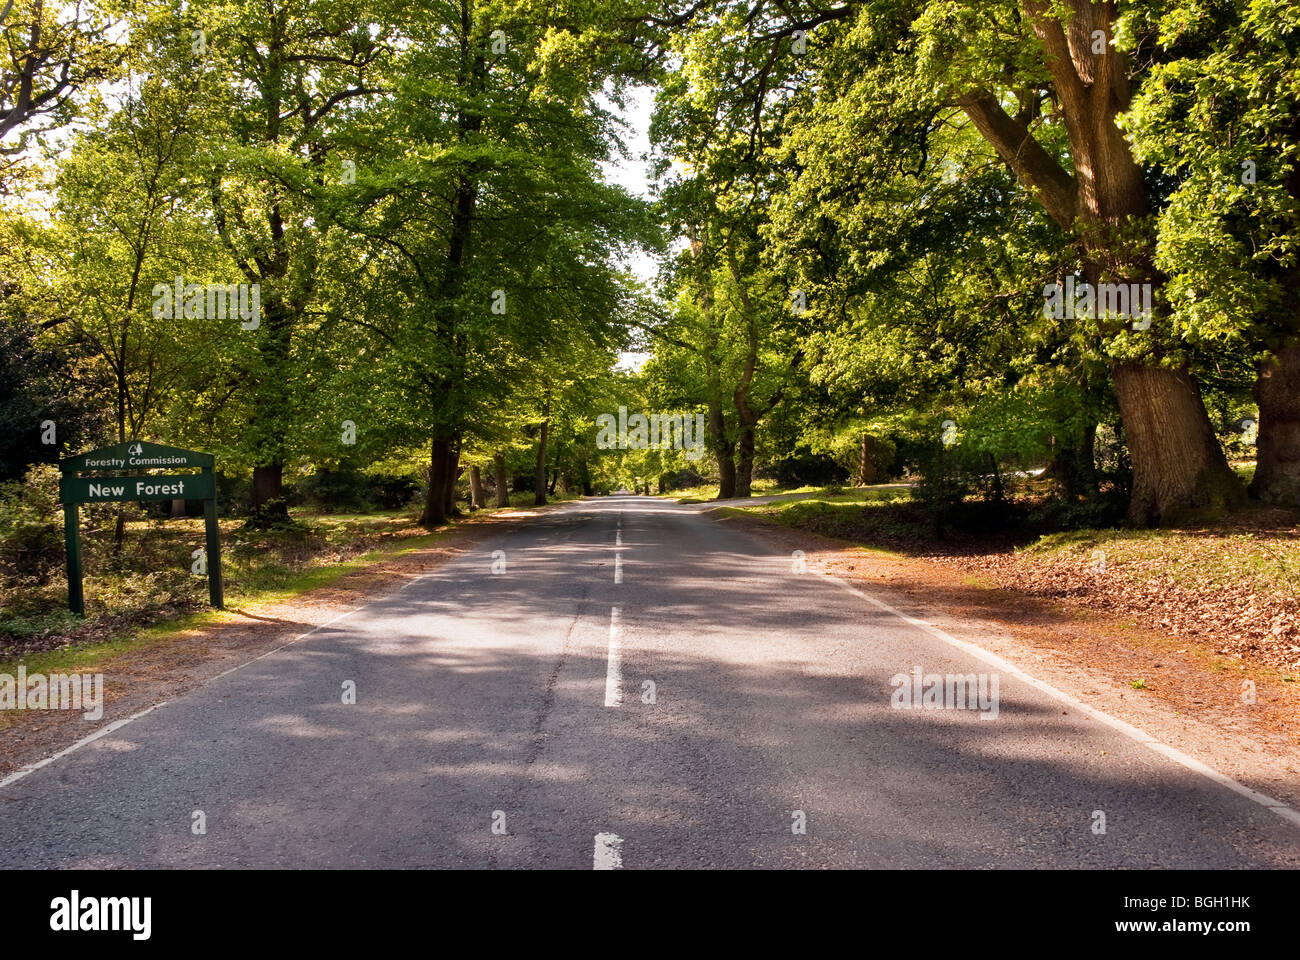 Entrance to the New Forest near Bramshaw Hampshire - Stock Image